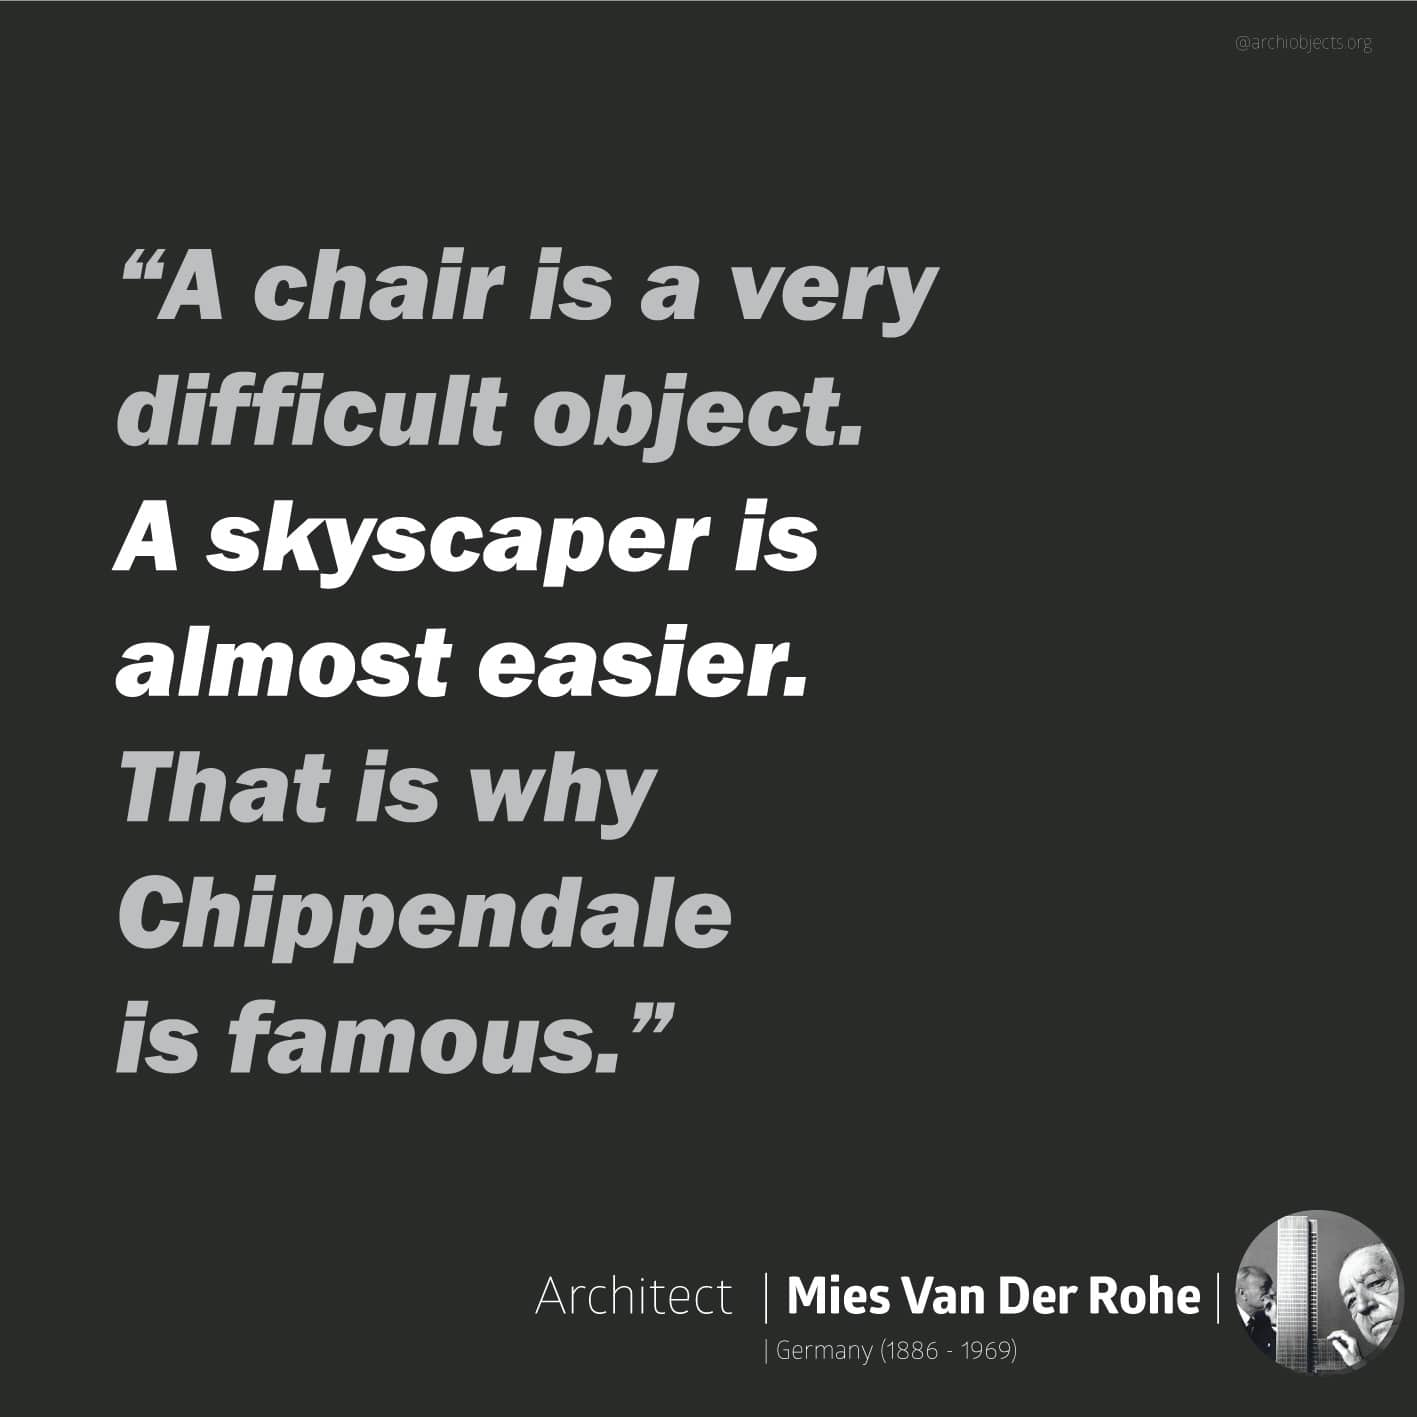 mies quote